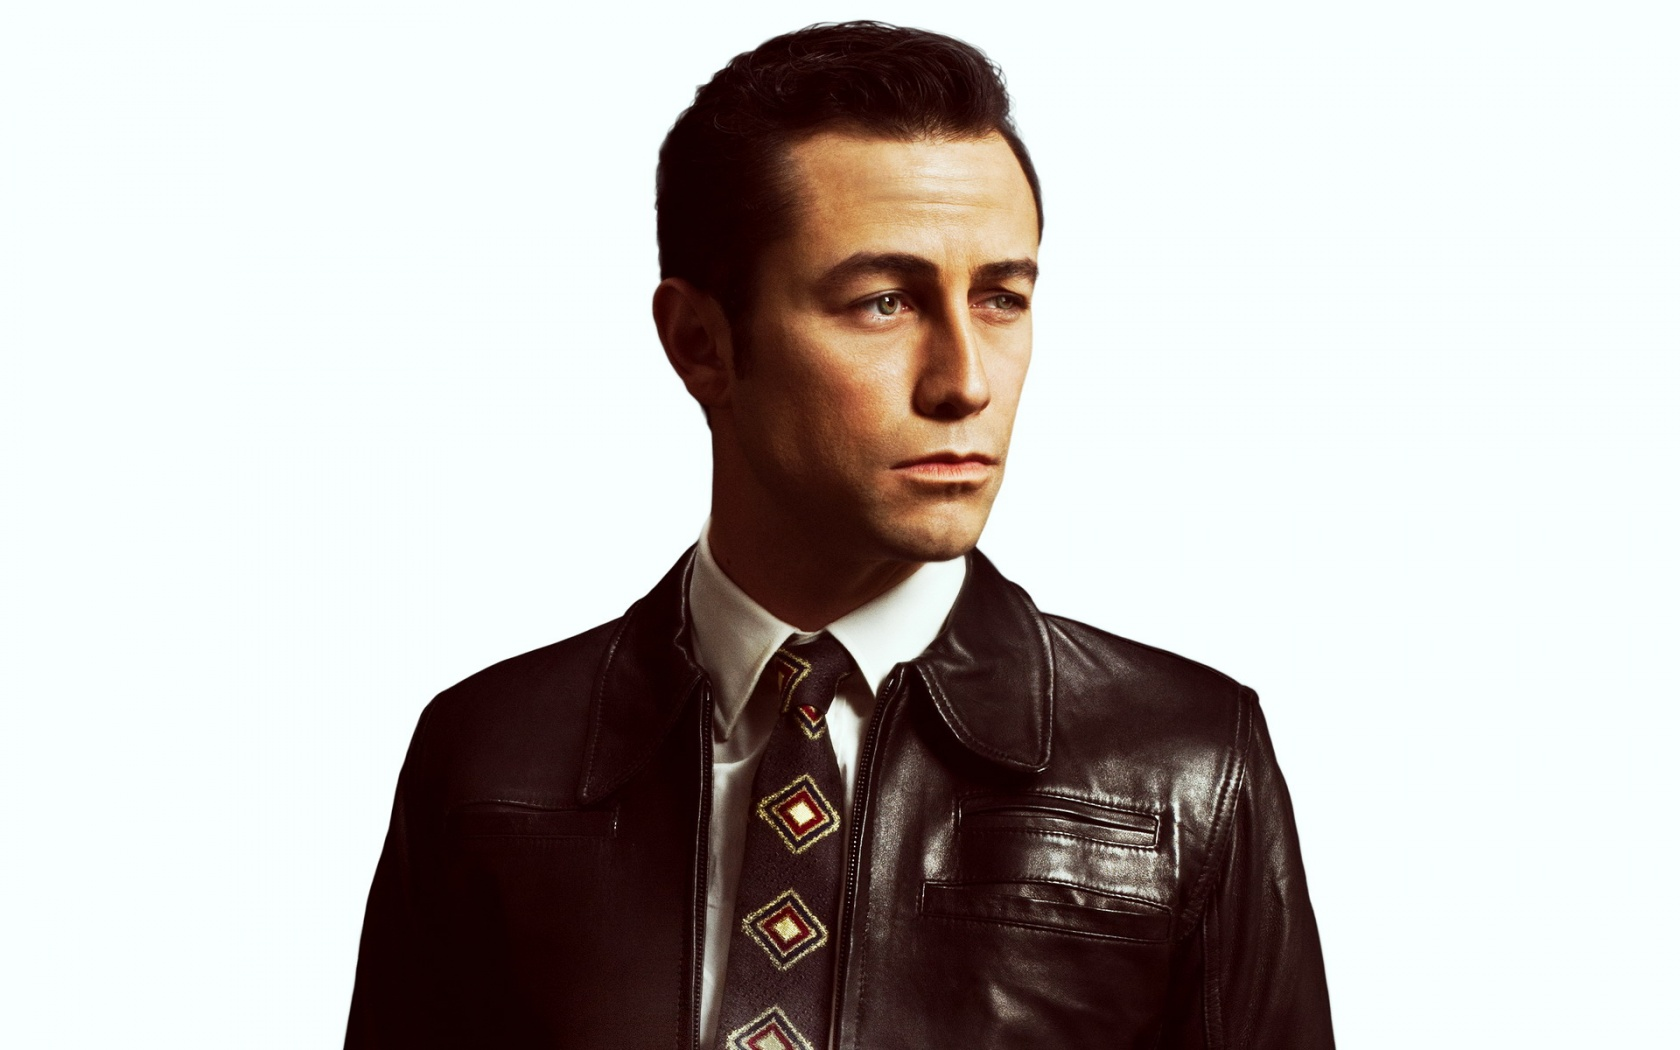 ... joseph gordon levitt HD Wallpapers0 ...